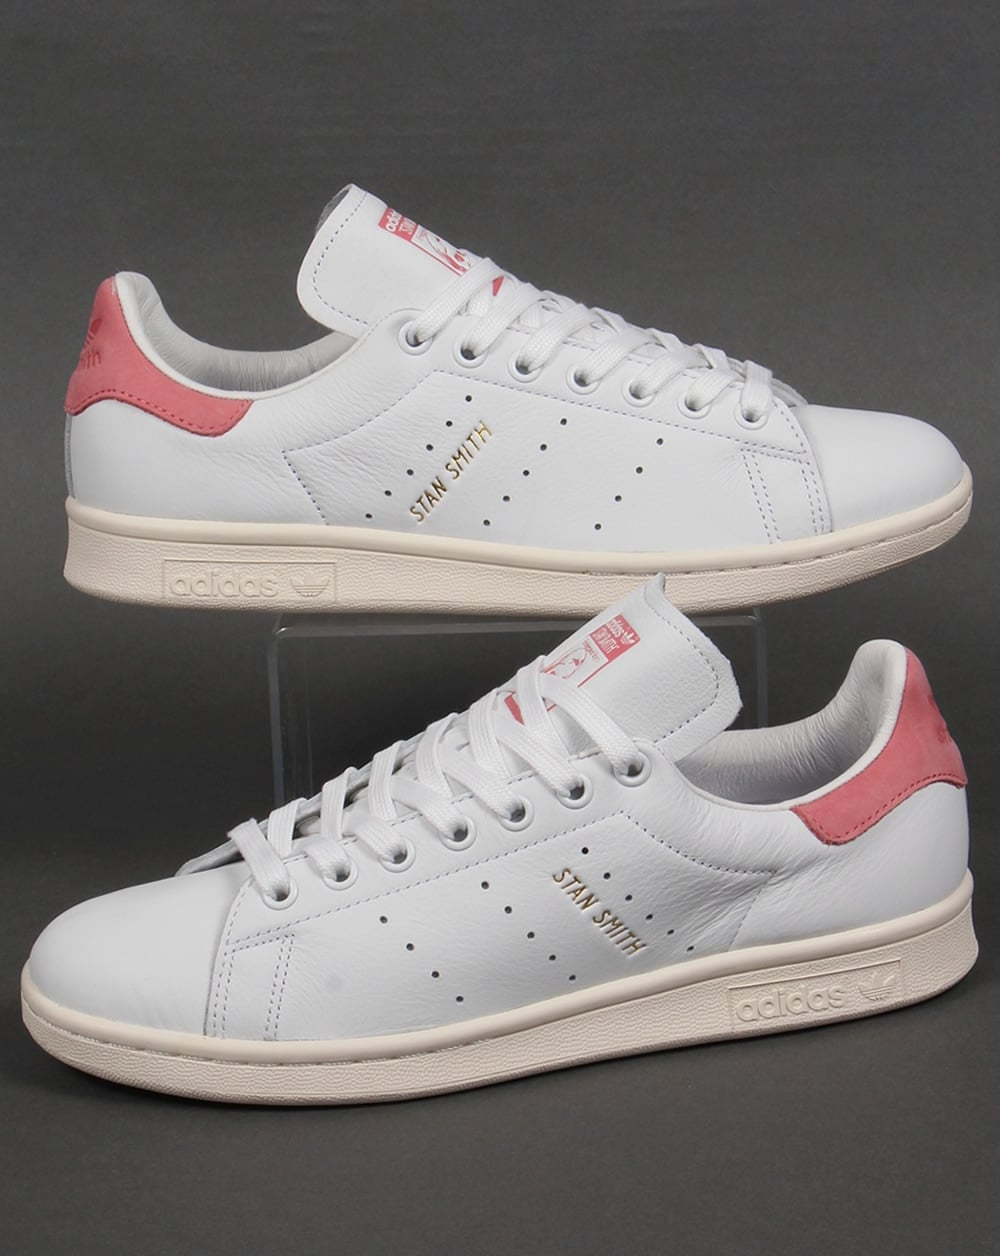 Adidas Stan Smith Pink Shoes